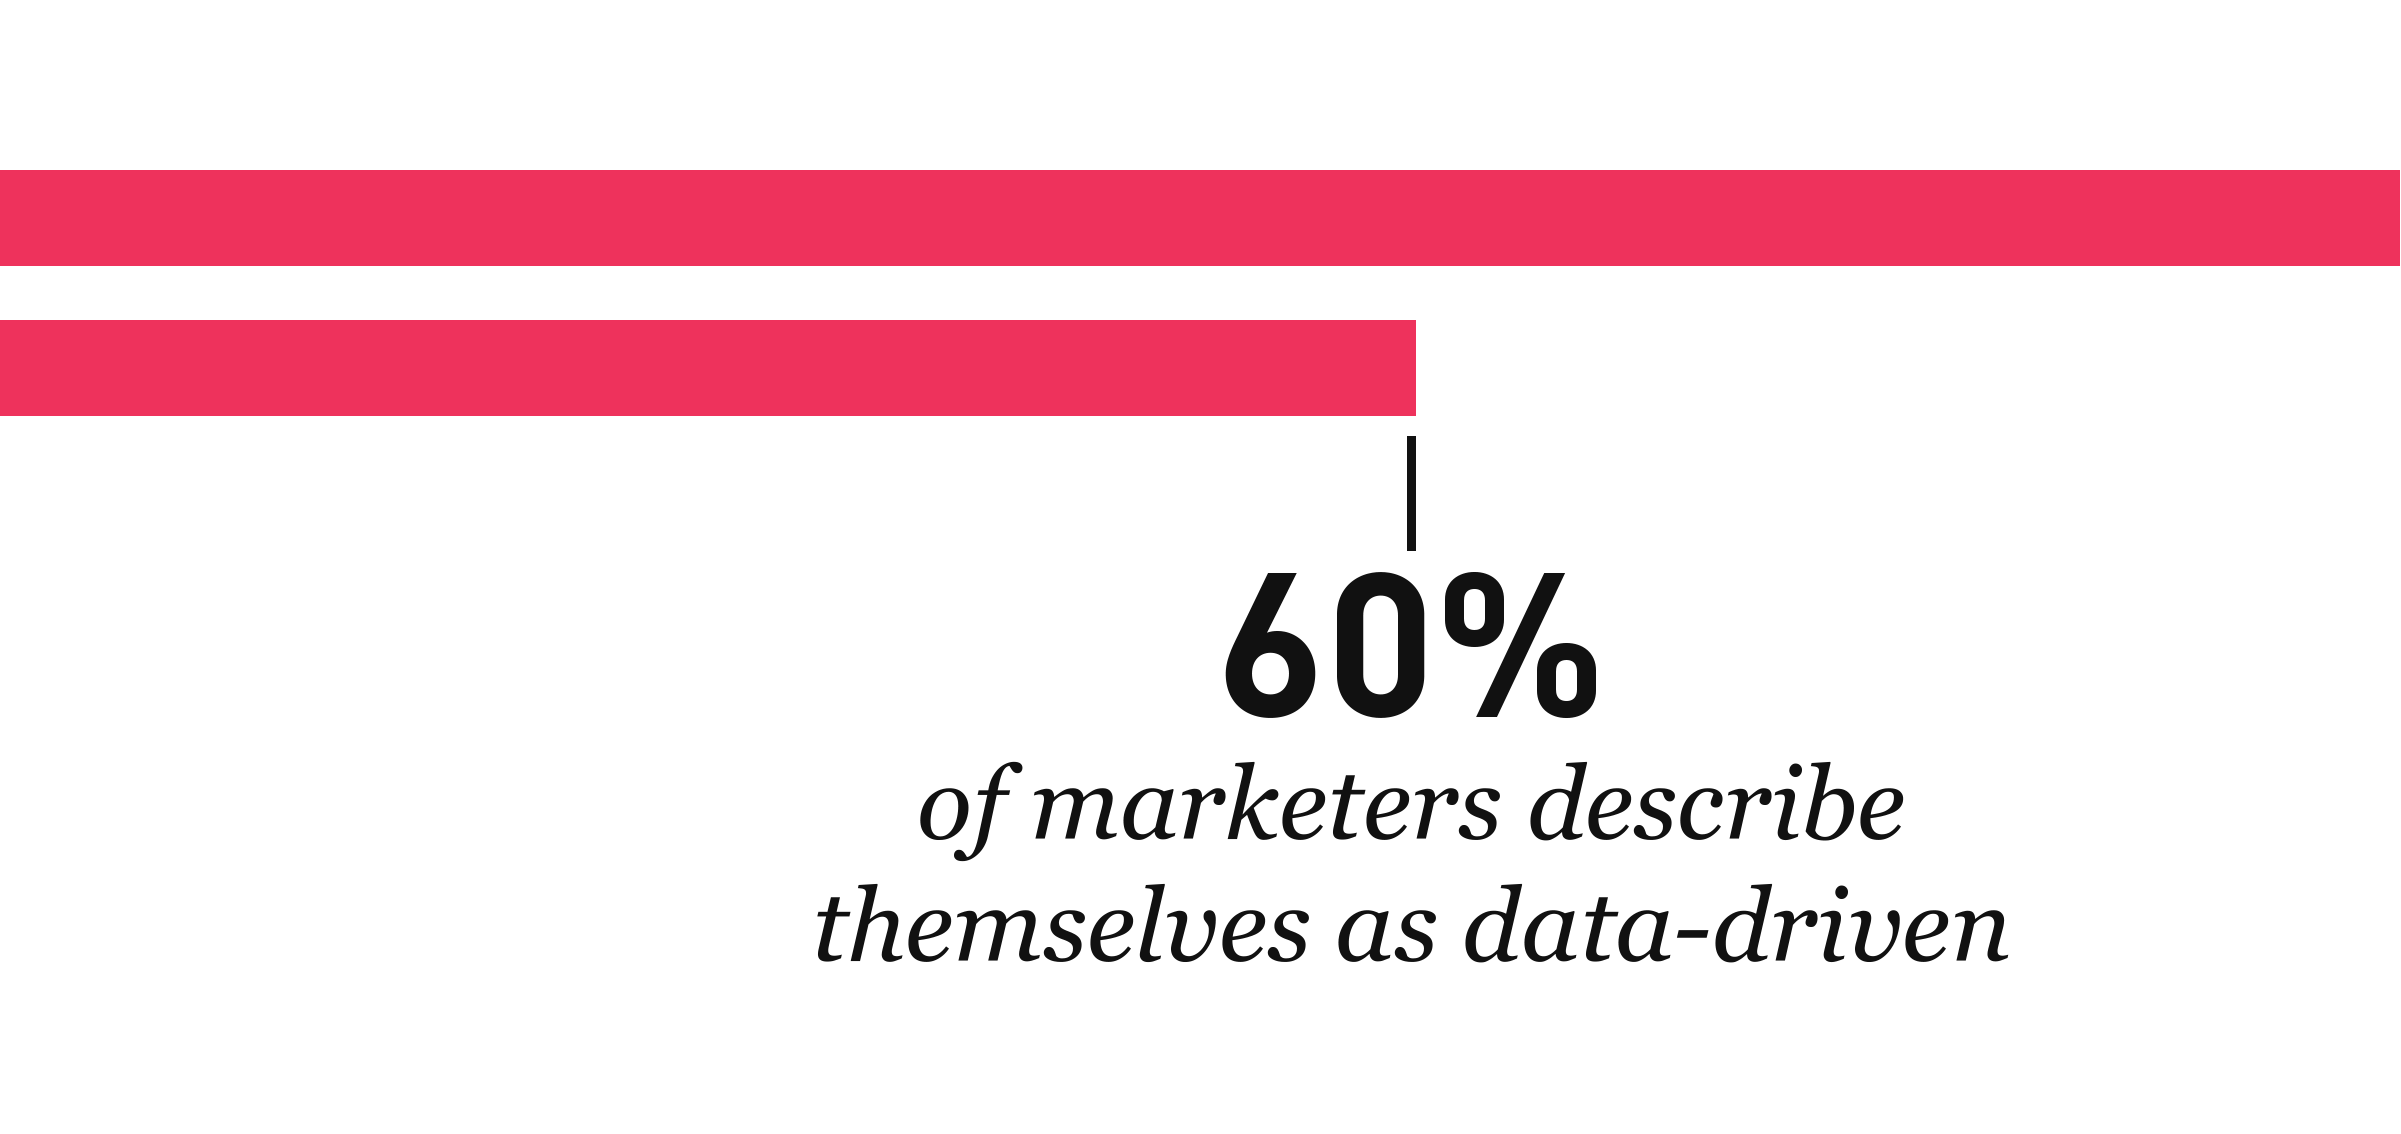 data-the-key-to-content-60-percent